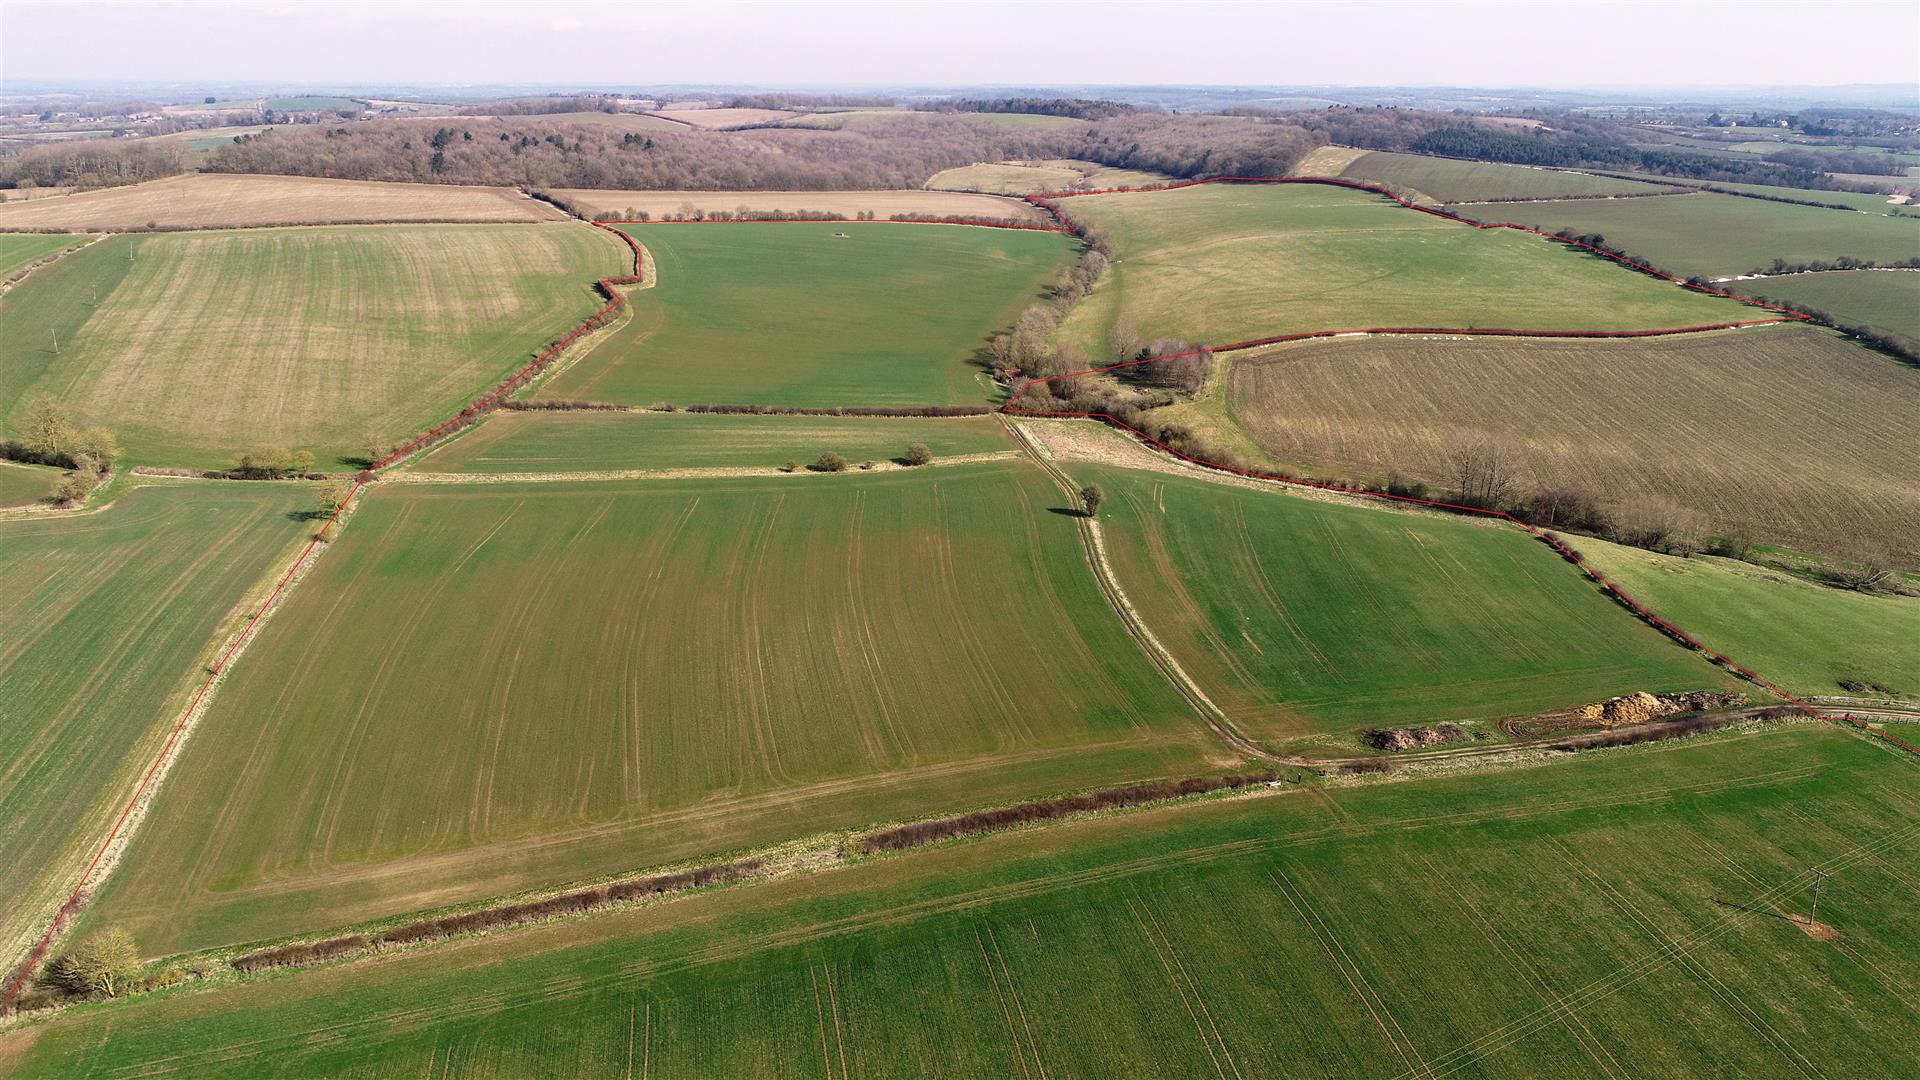 120 acres agricultural land at Alderminster